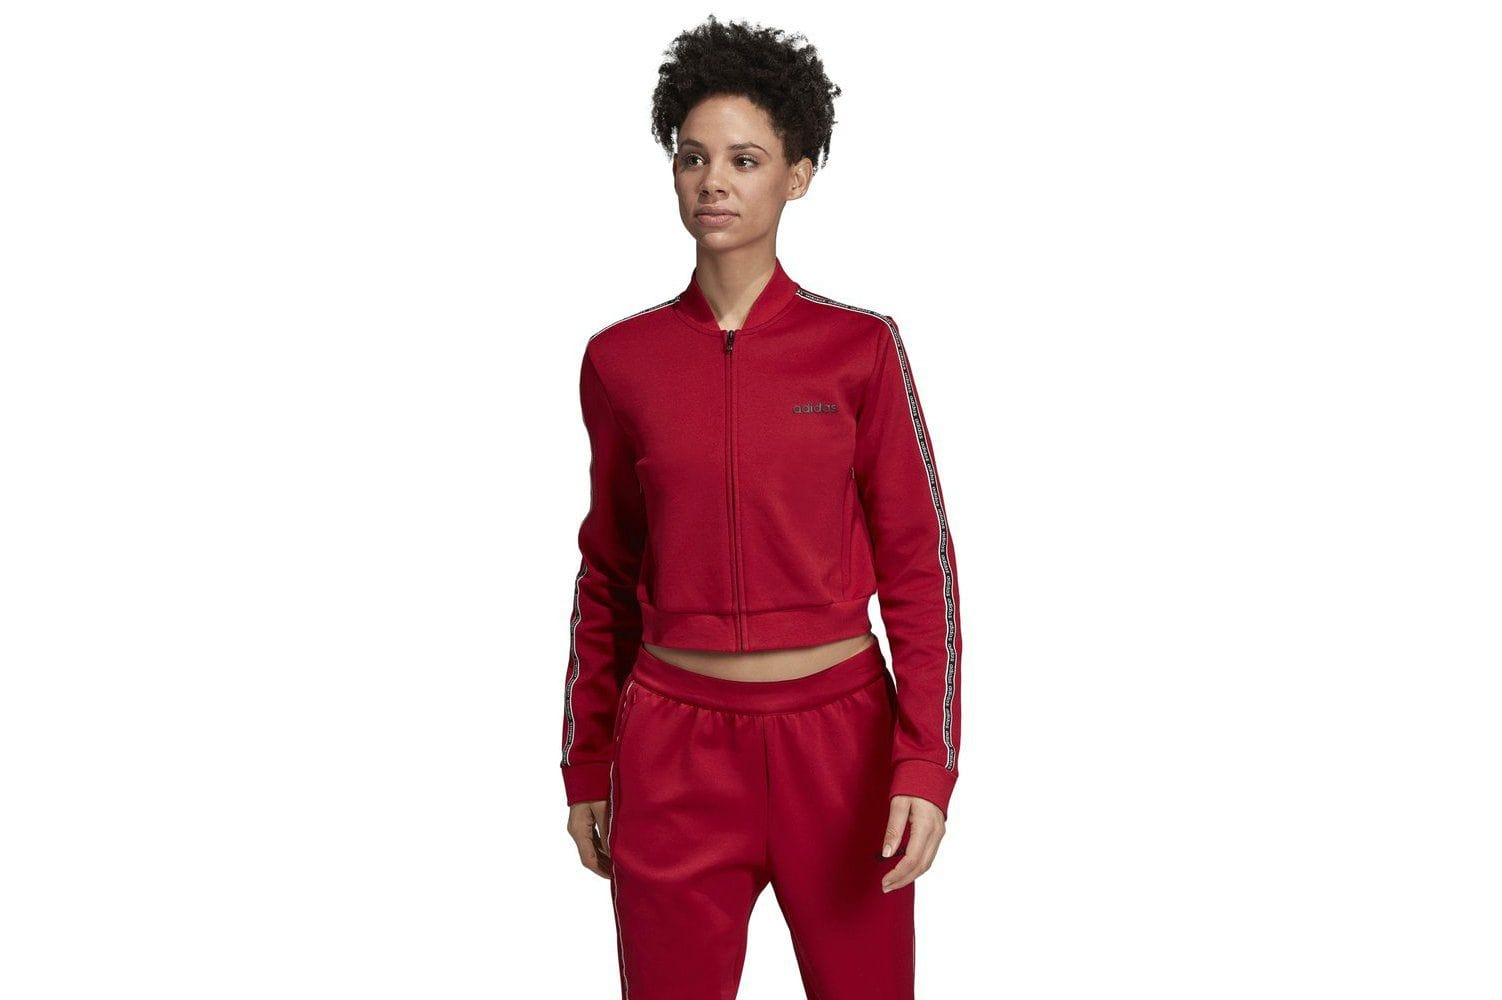 W C90 TRACKTOP - EJ9670 WOMENS SOFTGOODS ADIDAS XS RED/BLACK